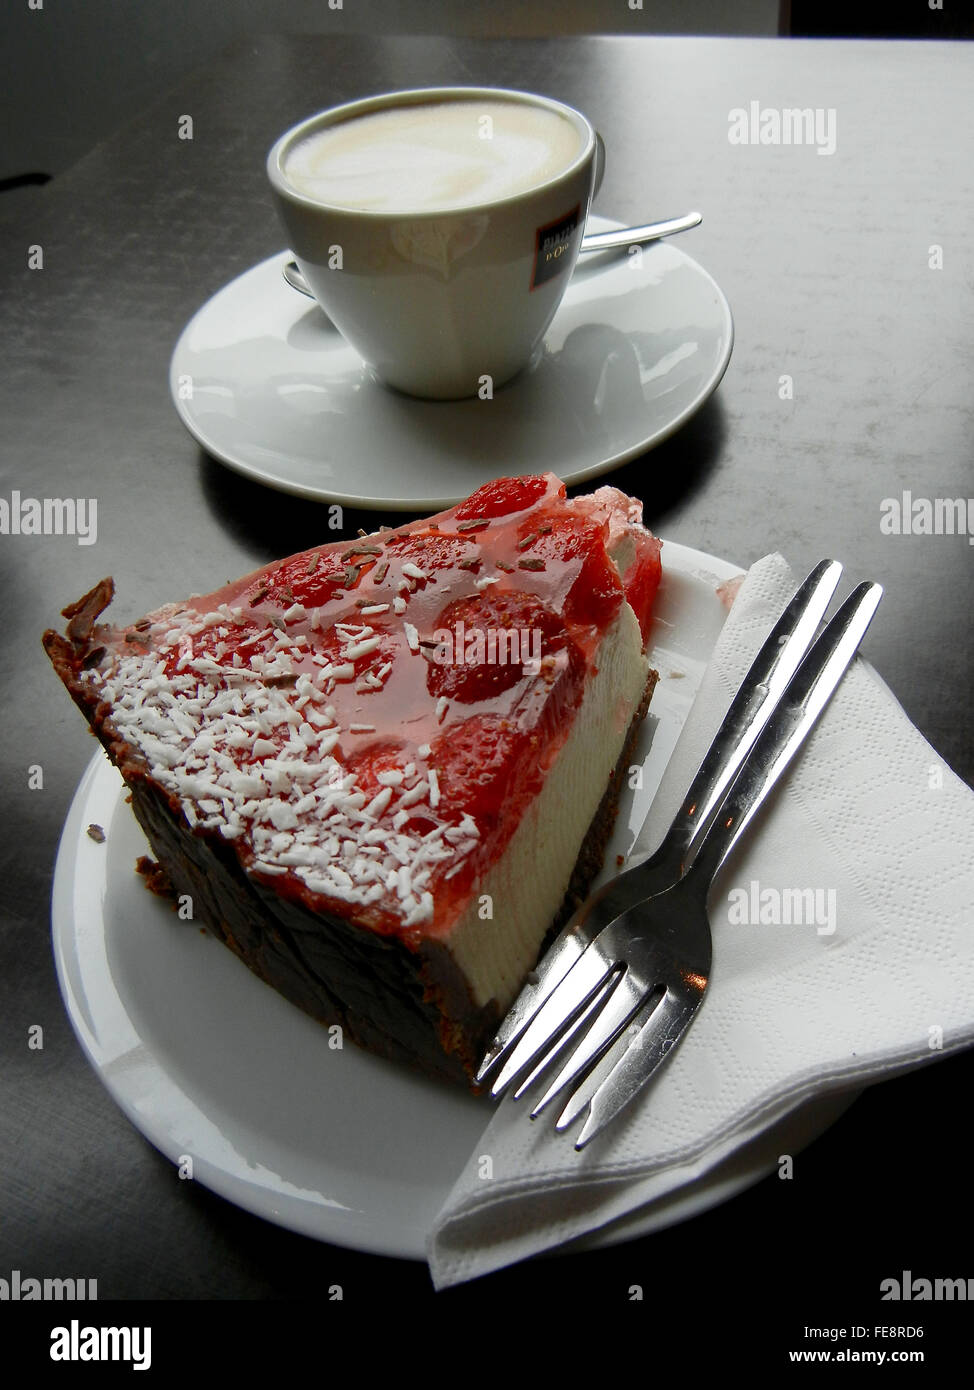 Skyyr Cheesecake and Cappuccino in Reykjavik Iceland - Stock Image